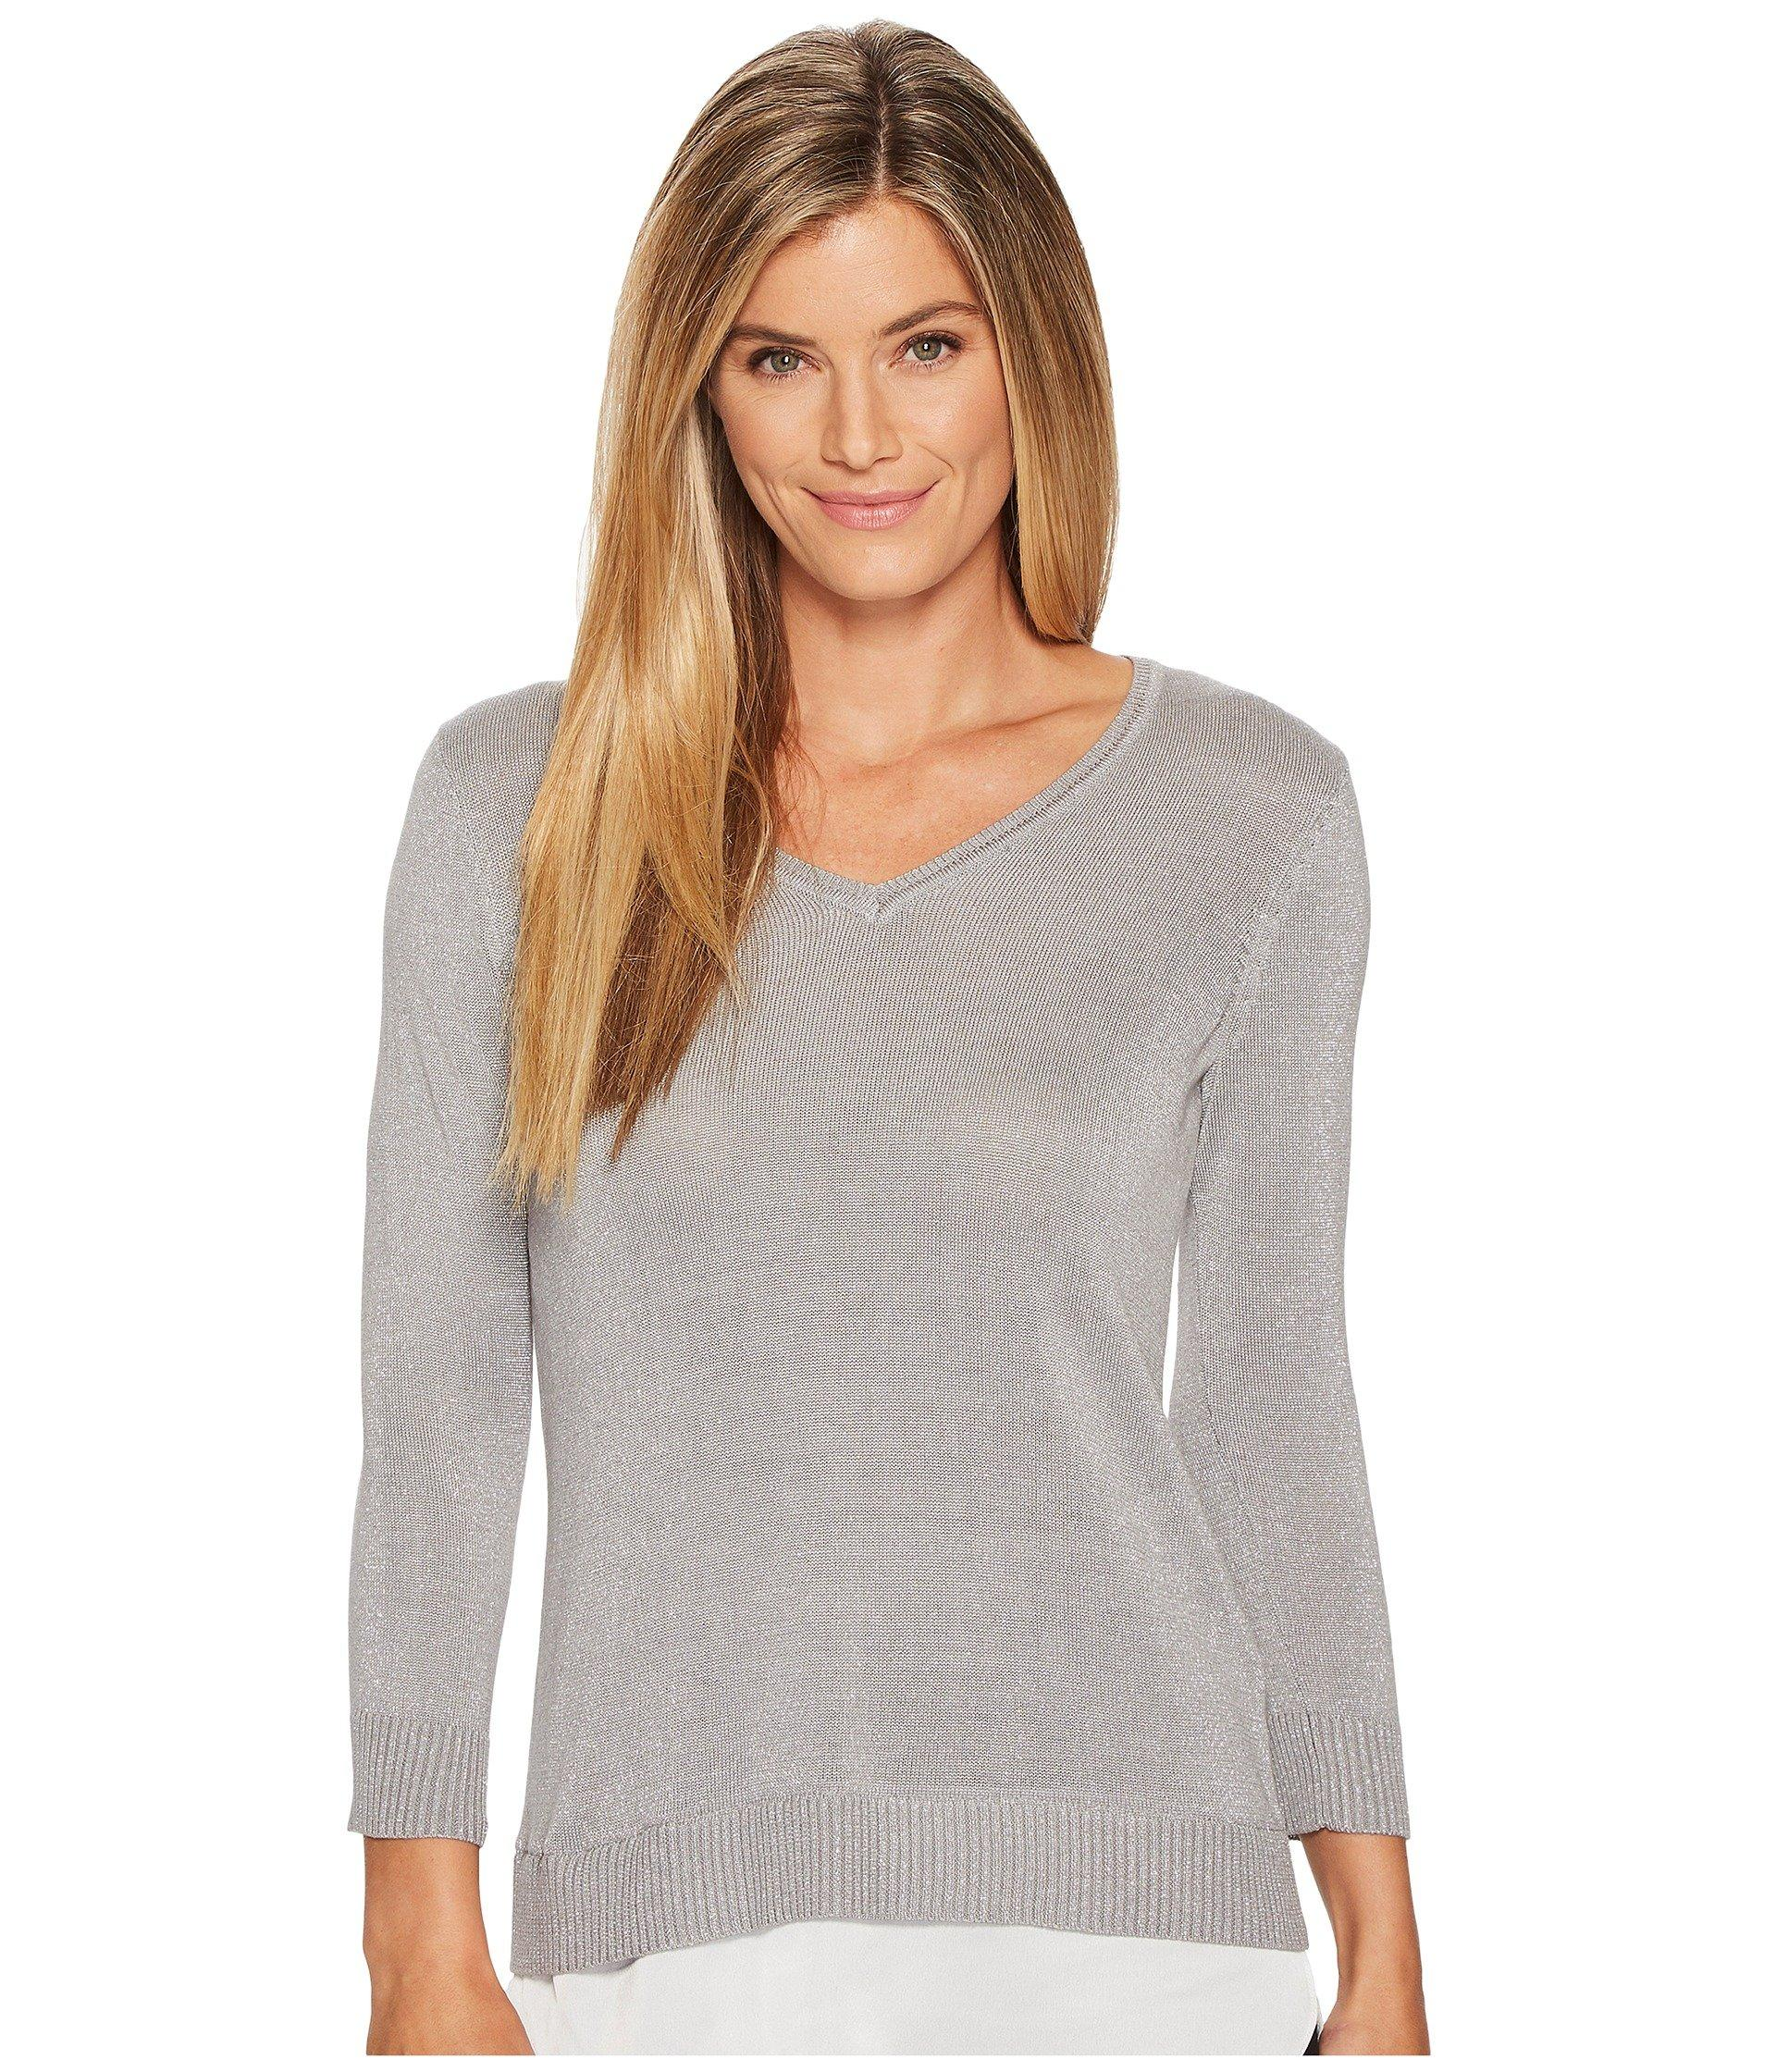 7058a9b8afb Long Sleeve Lurex Twofer Sweater in Heather Granite